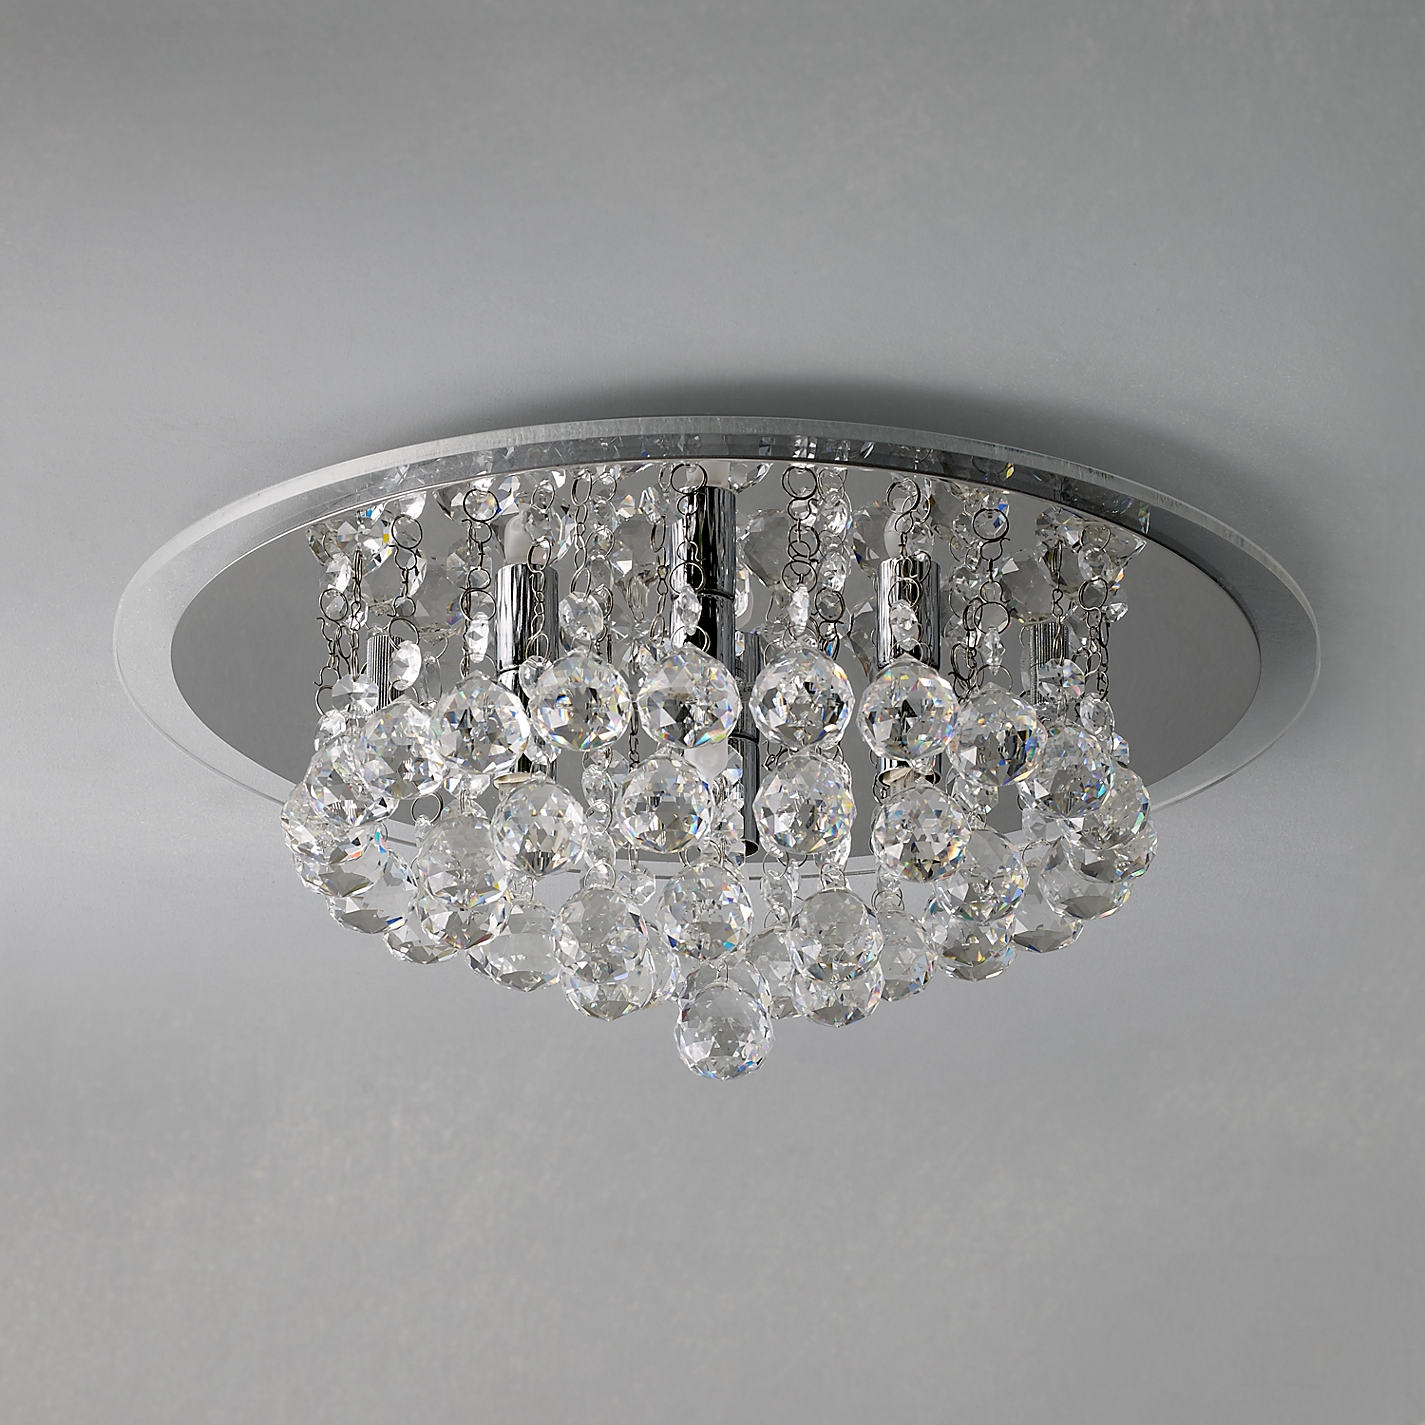 Ceiling Light Buy John Lewis Belinda Flush Ceiling Light Chrome With Regard To Flush Chandelier Ceiling Lights (Image 5 of 25)